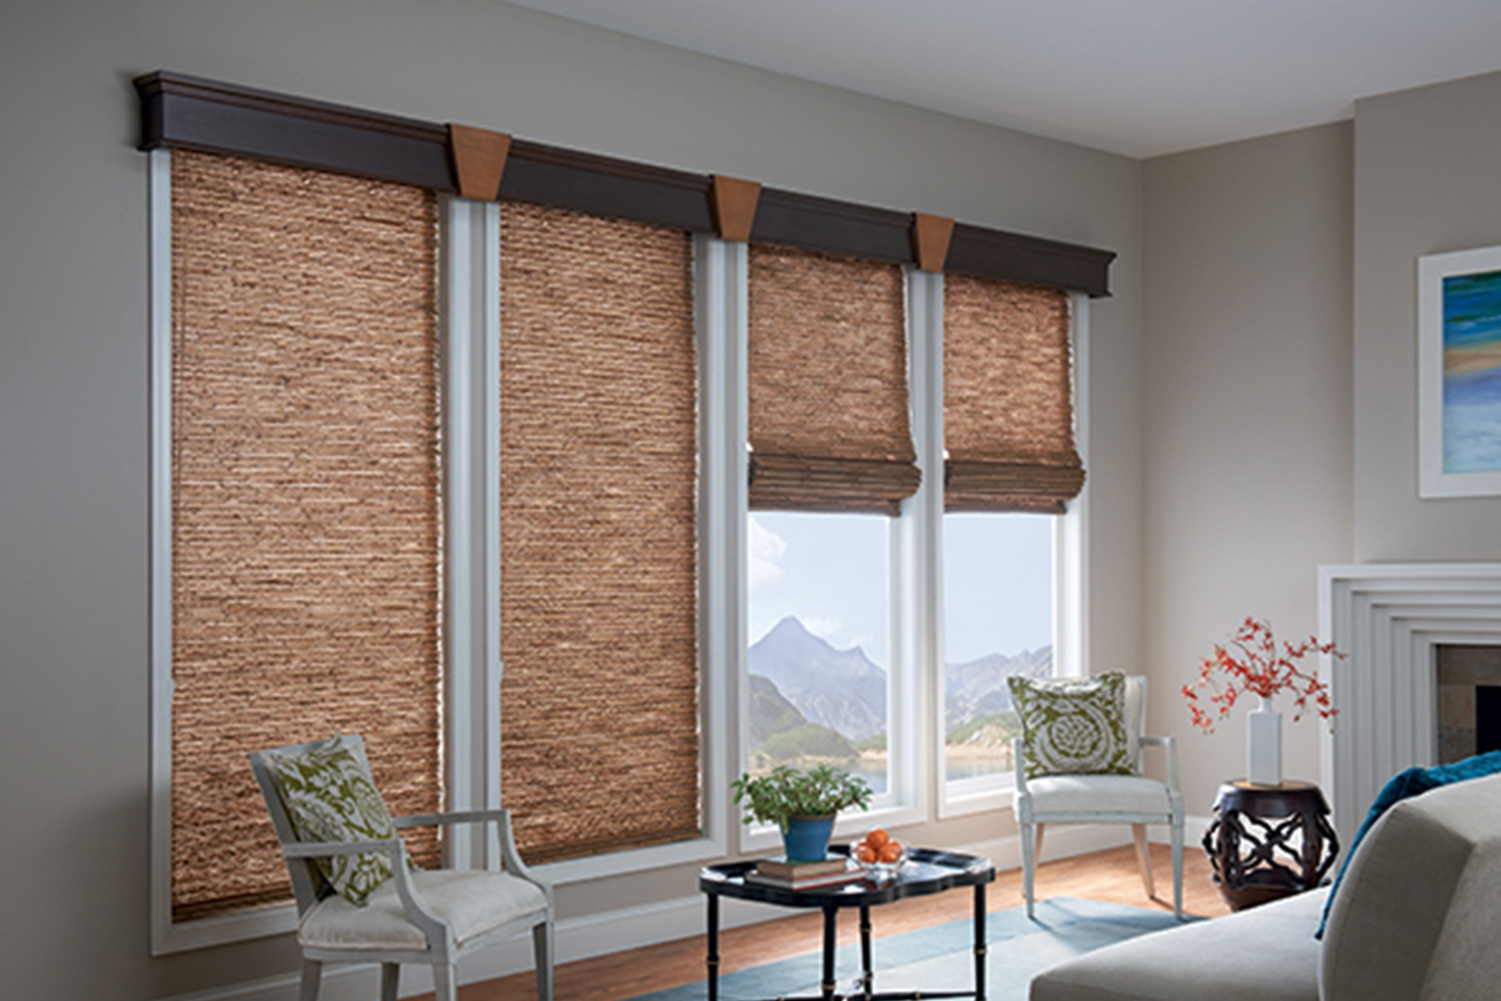 Fort Collins Roman Shades Window Shades The Blind Guy Intended For Custom Roman Blinds (View 4 of 15)